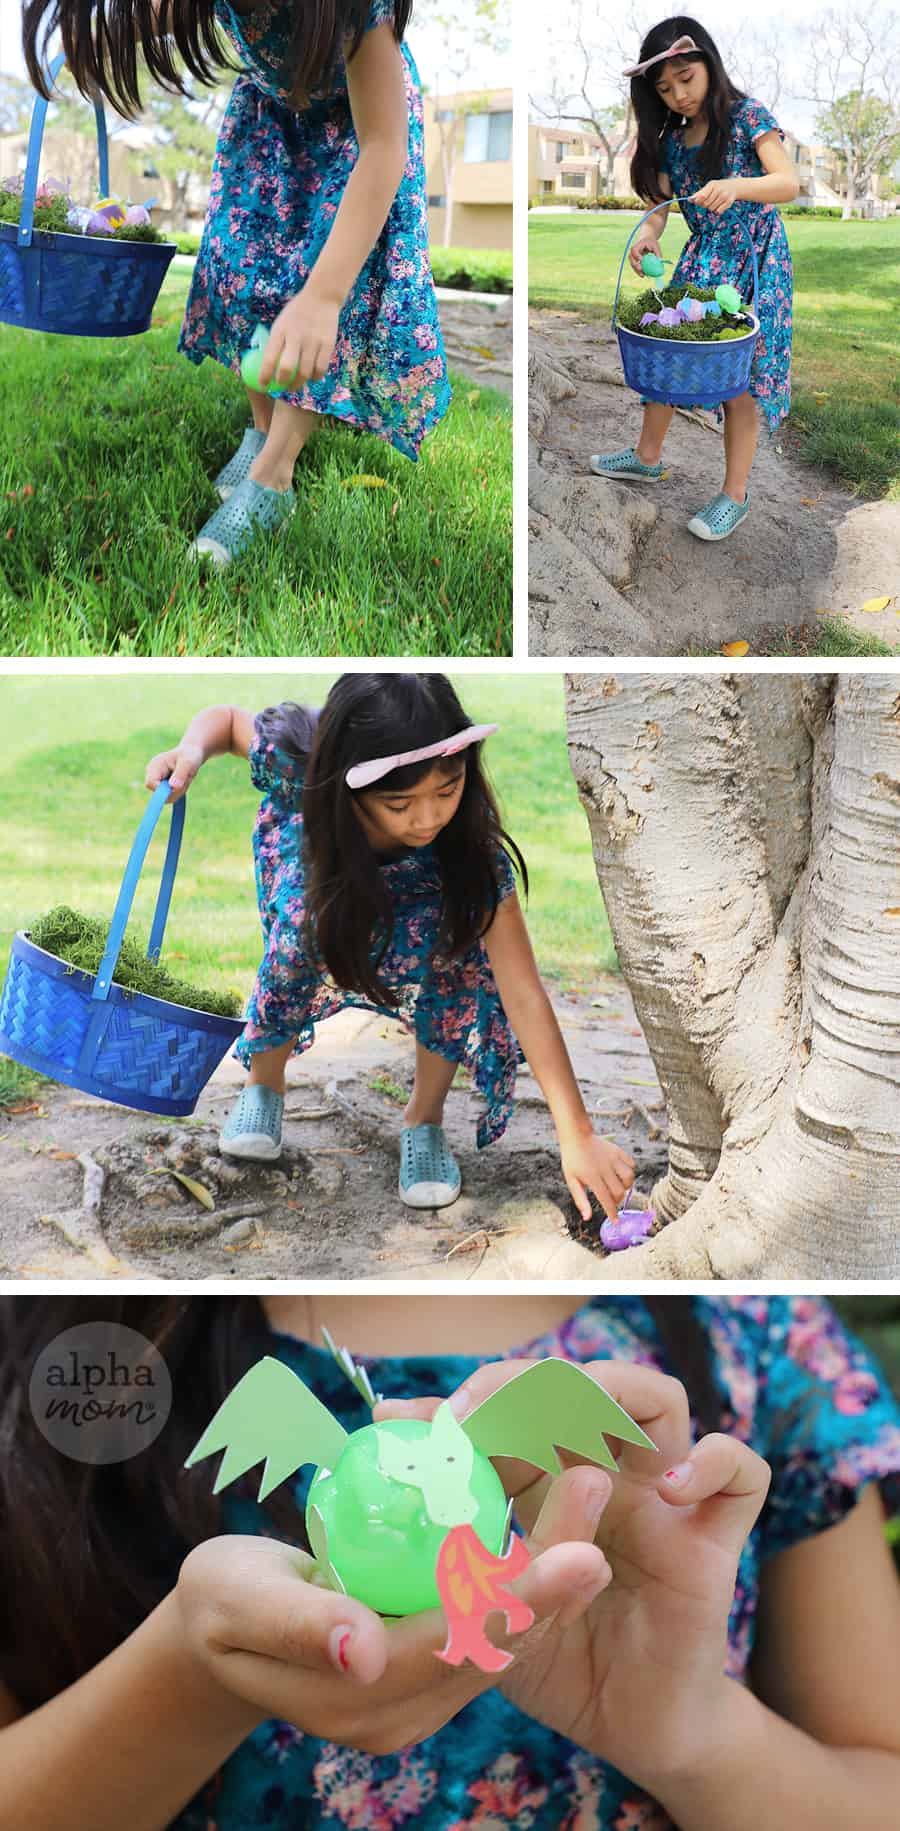 young girl on easter egg hunt and found plastic egg that looks like mini dragon creature